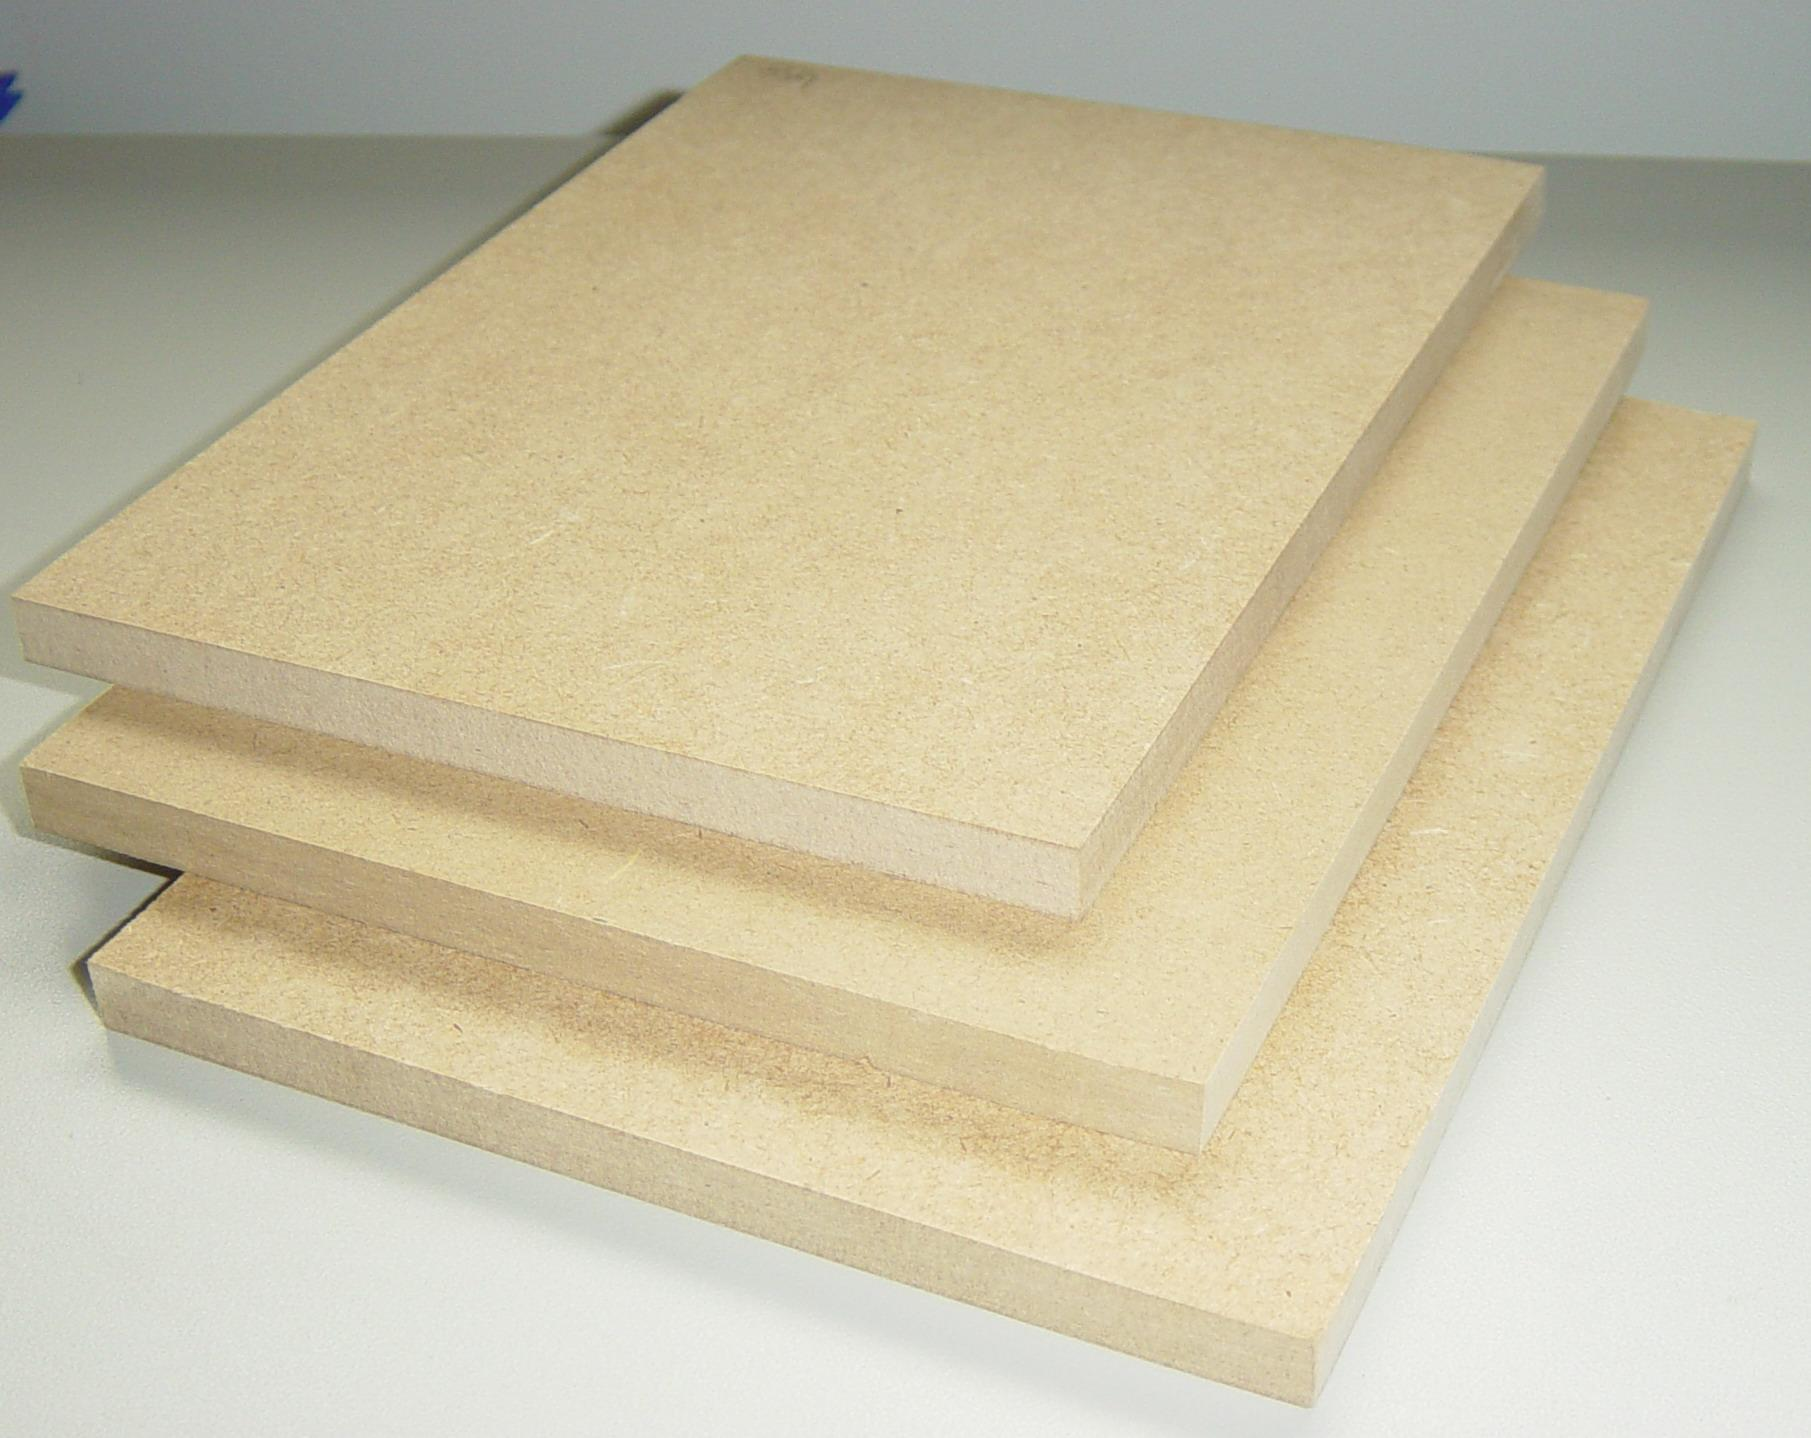 Medium Density Fiberboard Mdf ~ Mdf mm